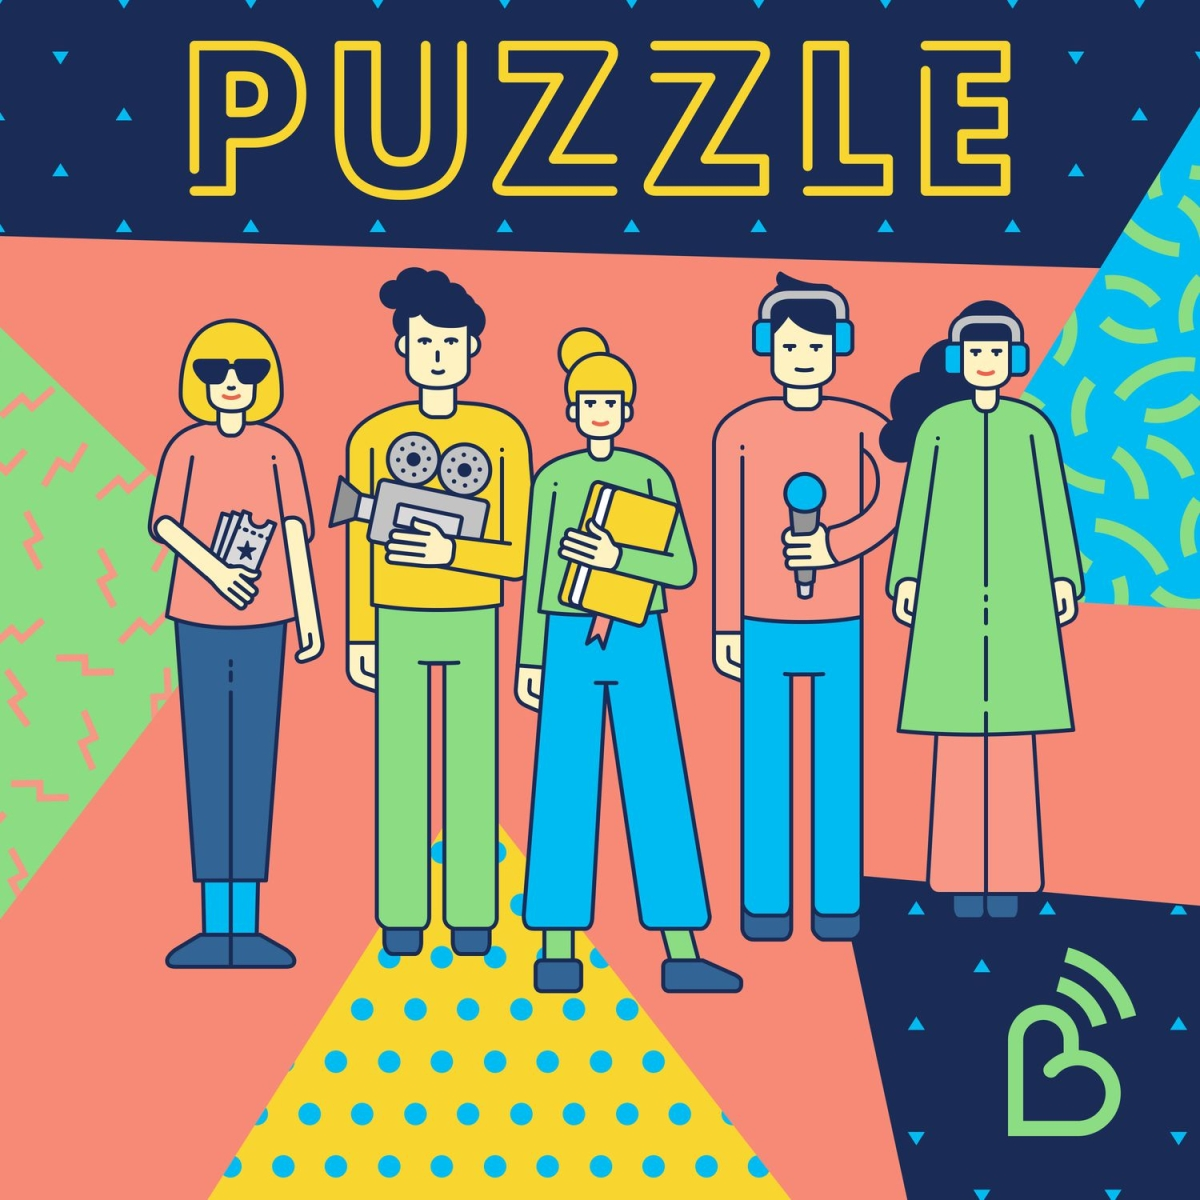 Puzzle cover image